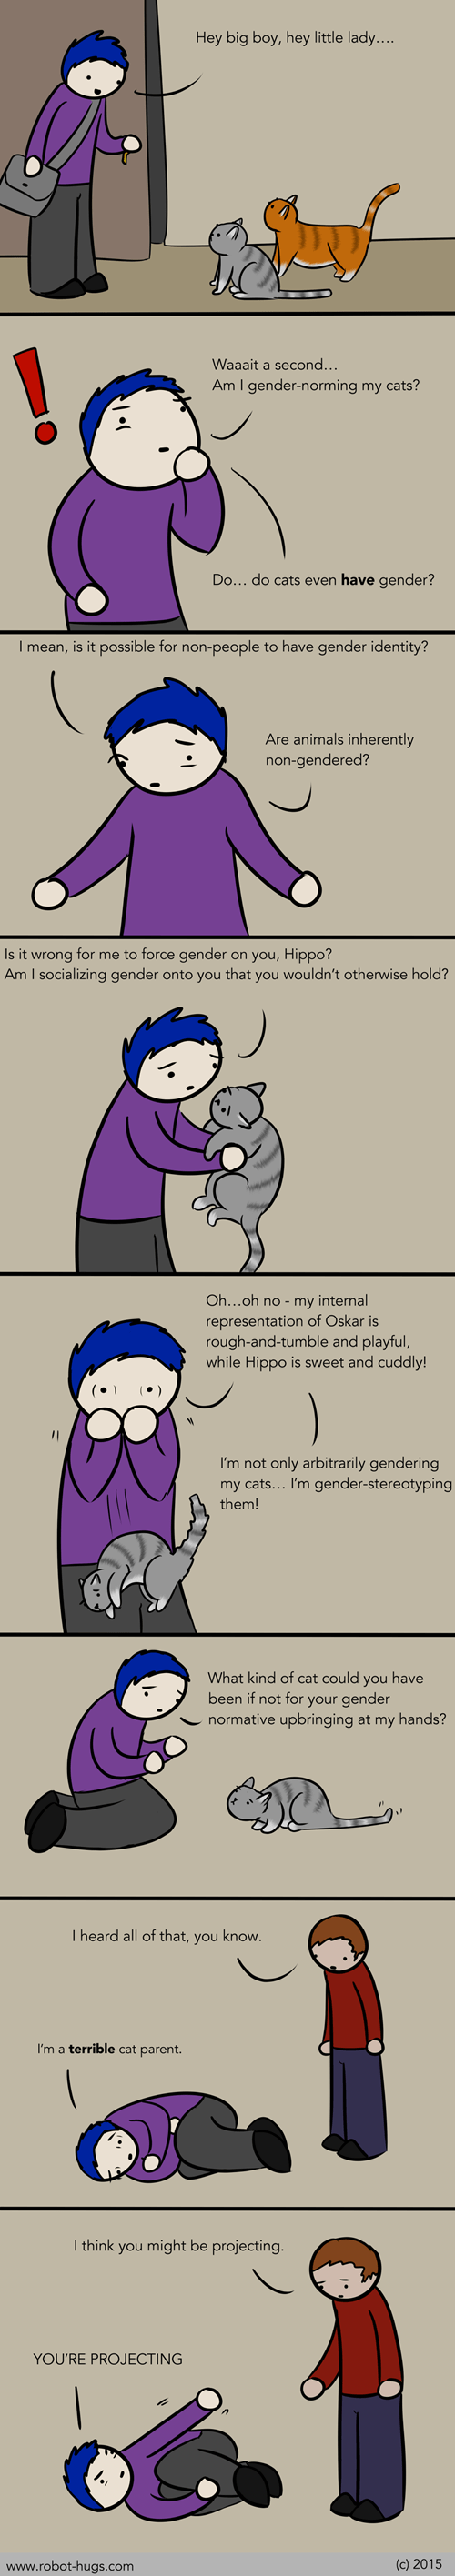 gender,pets,parenting,web comics,false binaries